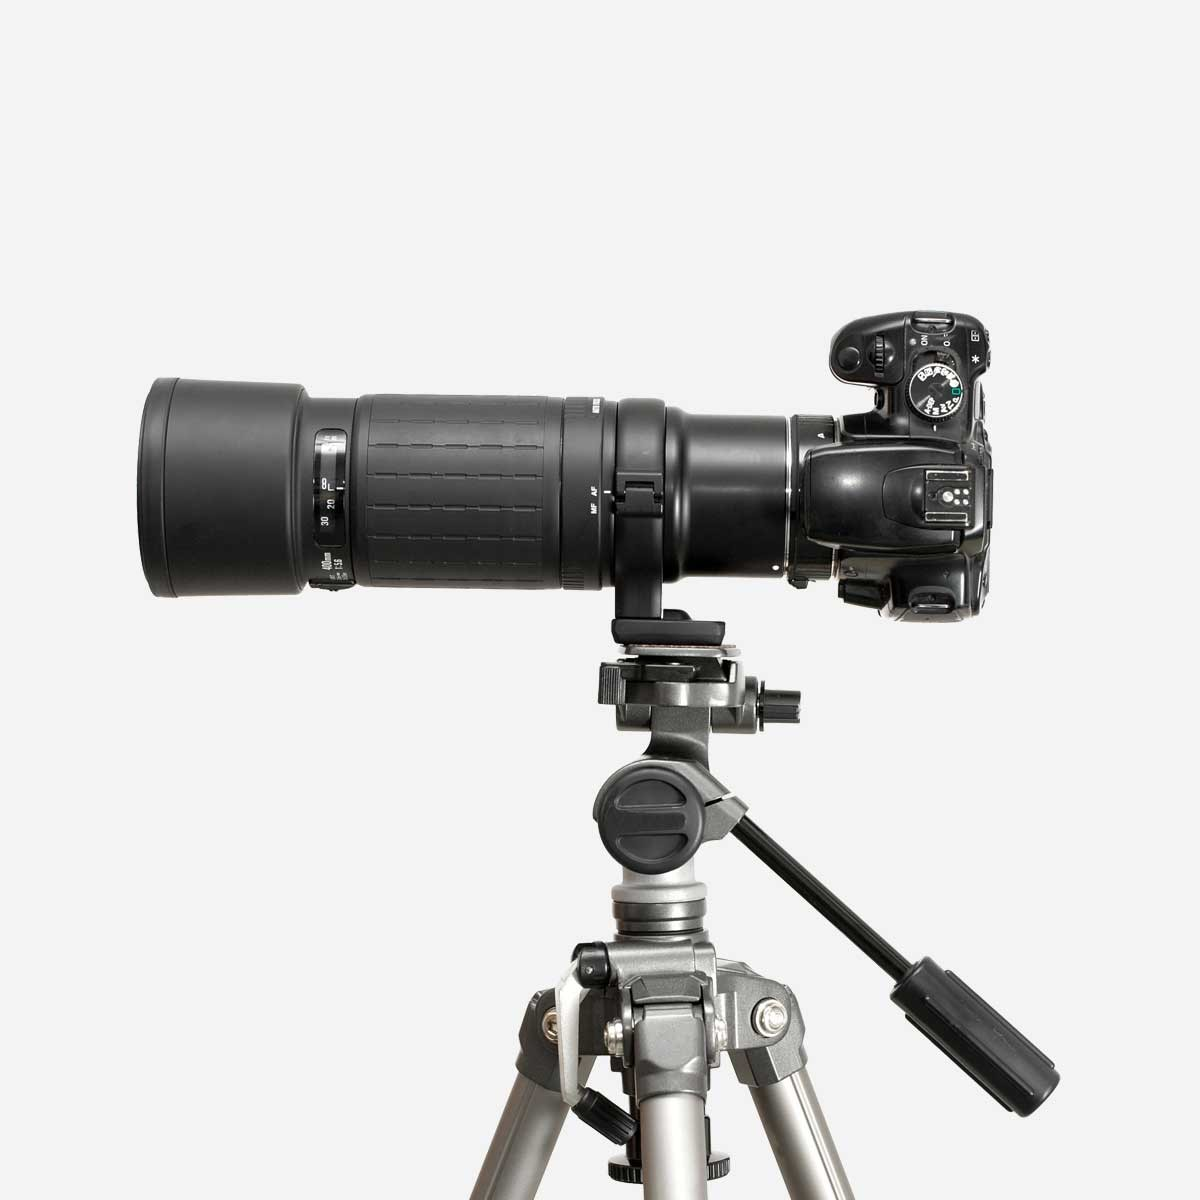 Shop now for Camera Tripods